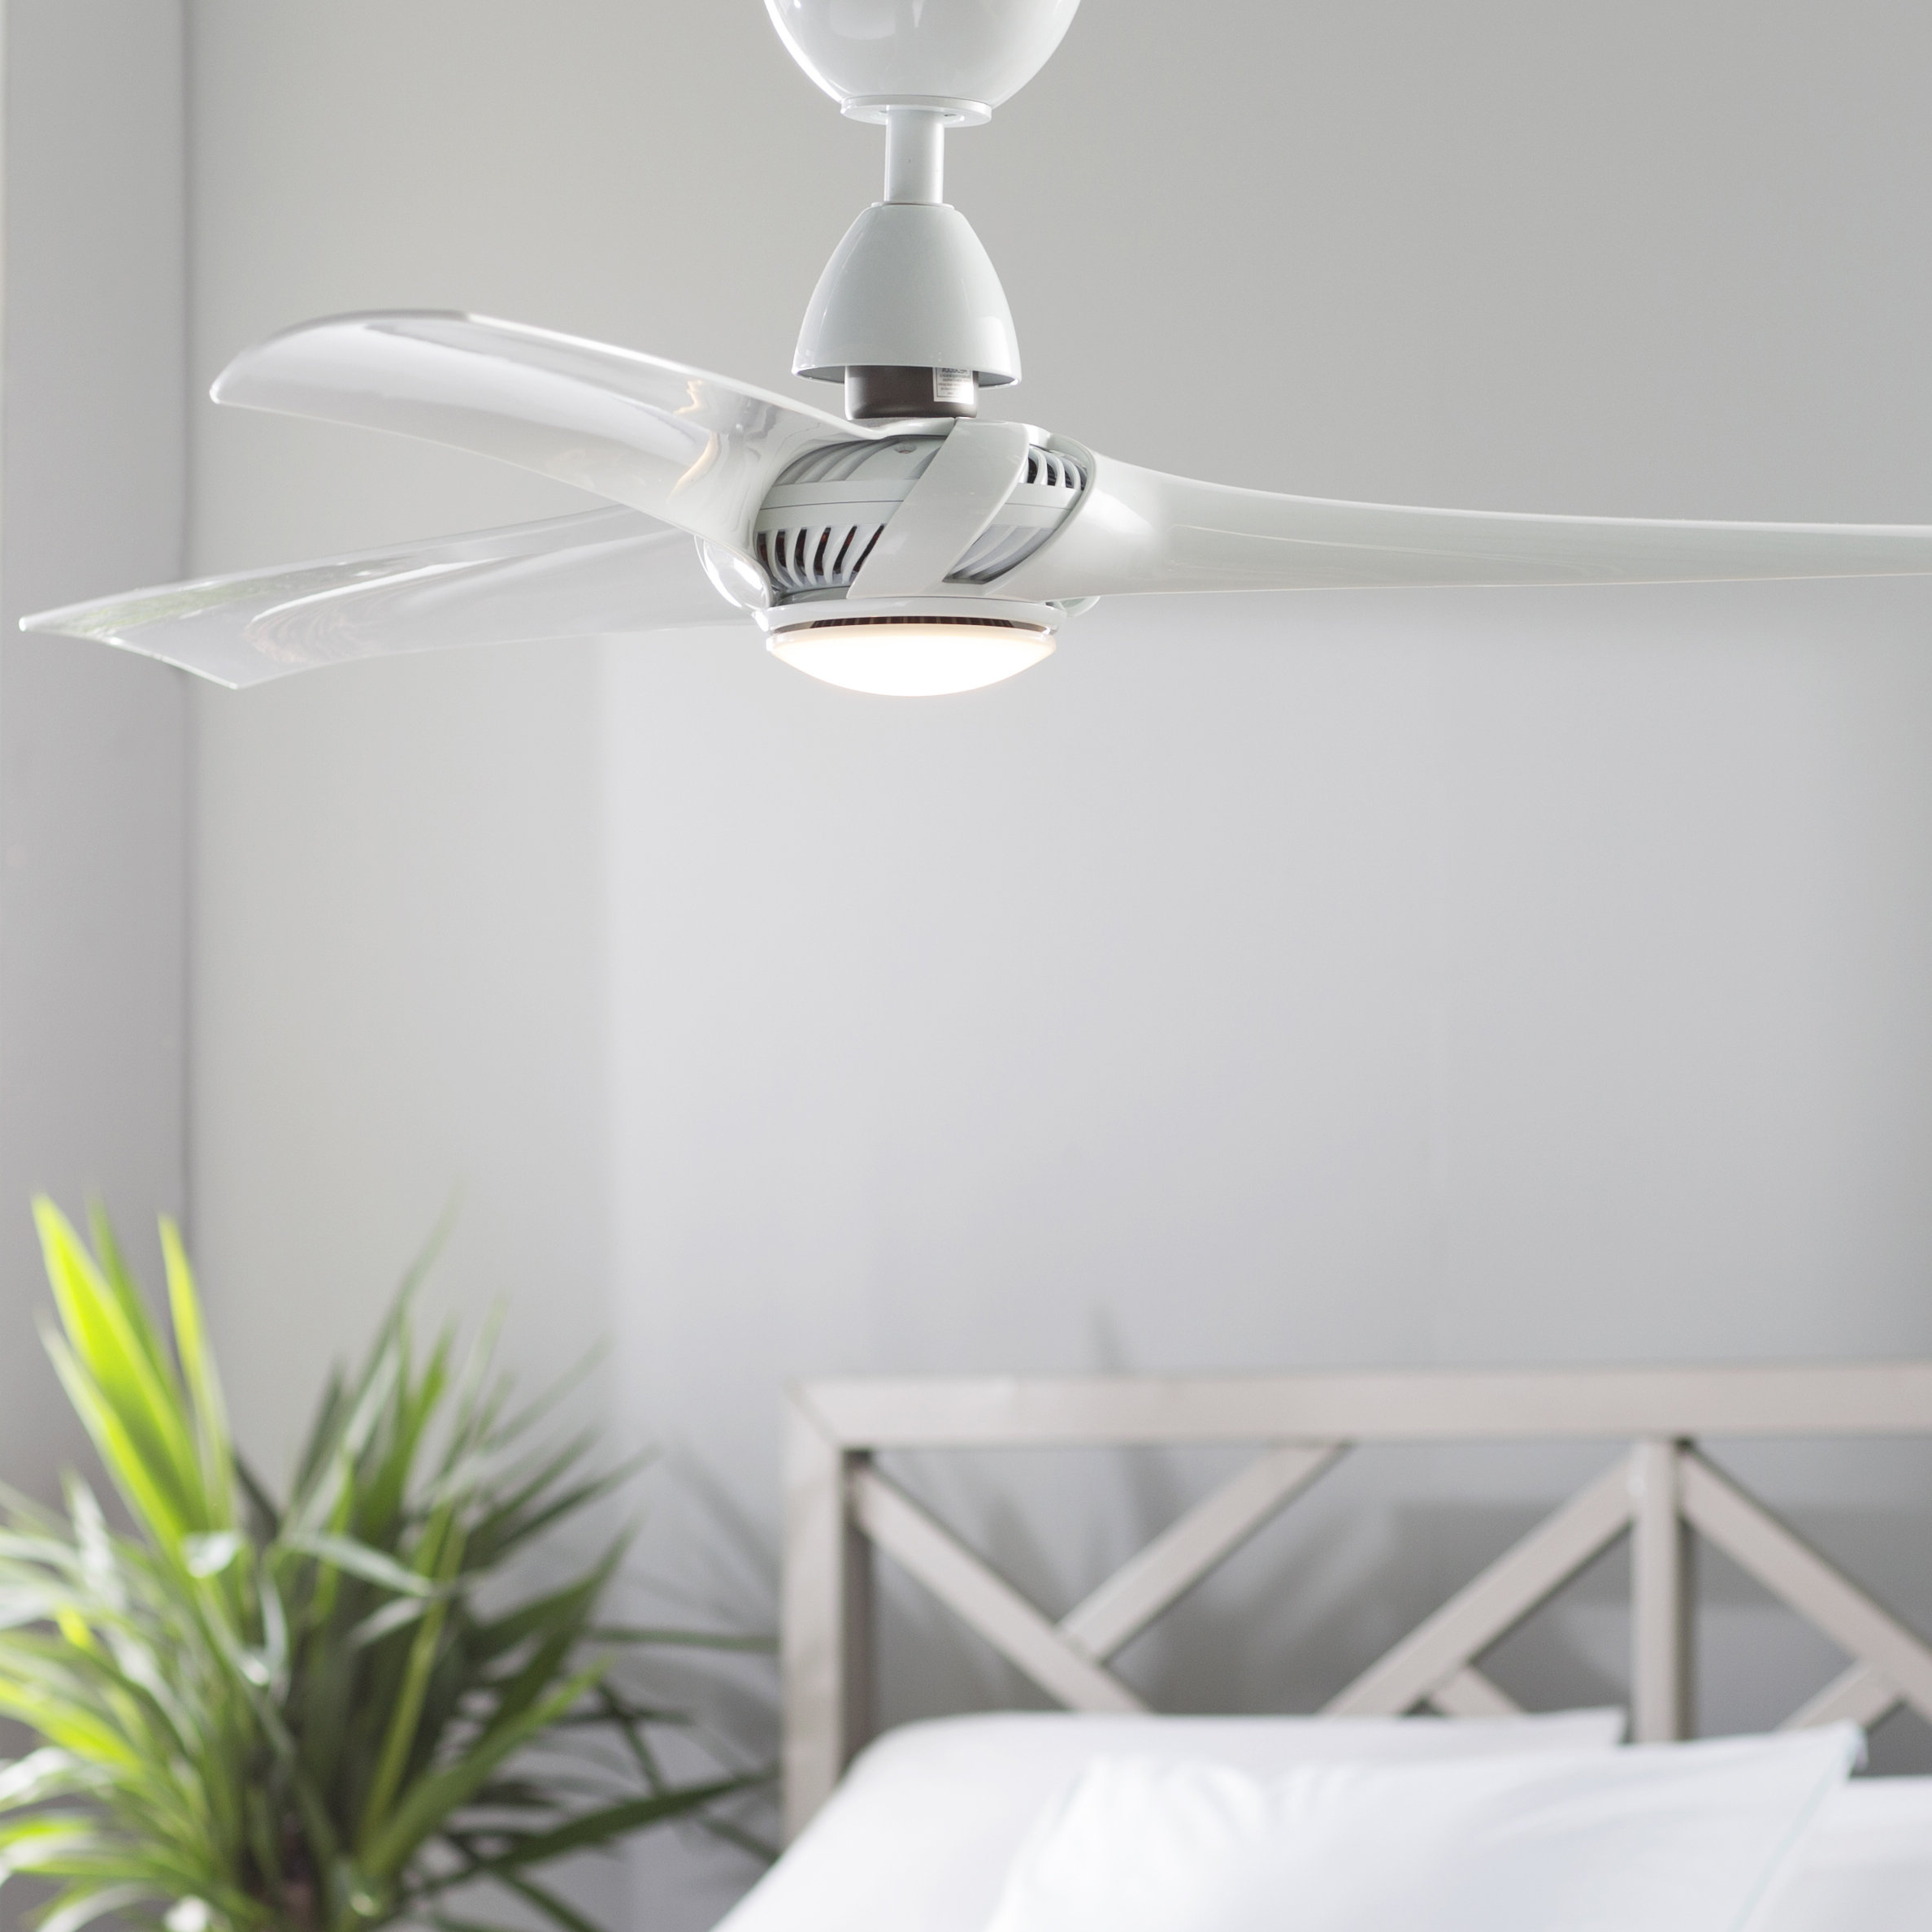 Favorite 52'' Cairo 3 Blade Led Ceiling Fan With Remote, Light Kit Included Regarding Paige 3 Blade Led Ceiling Fans (View 7 of 20)